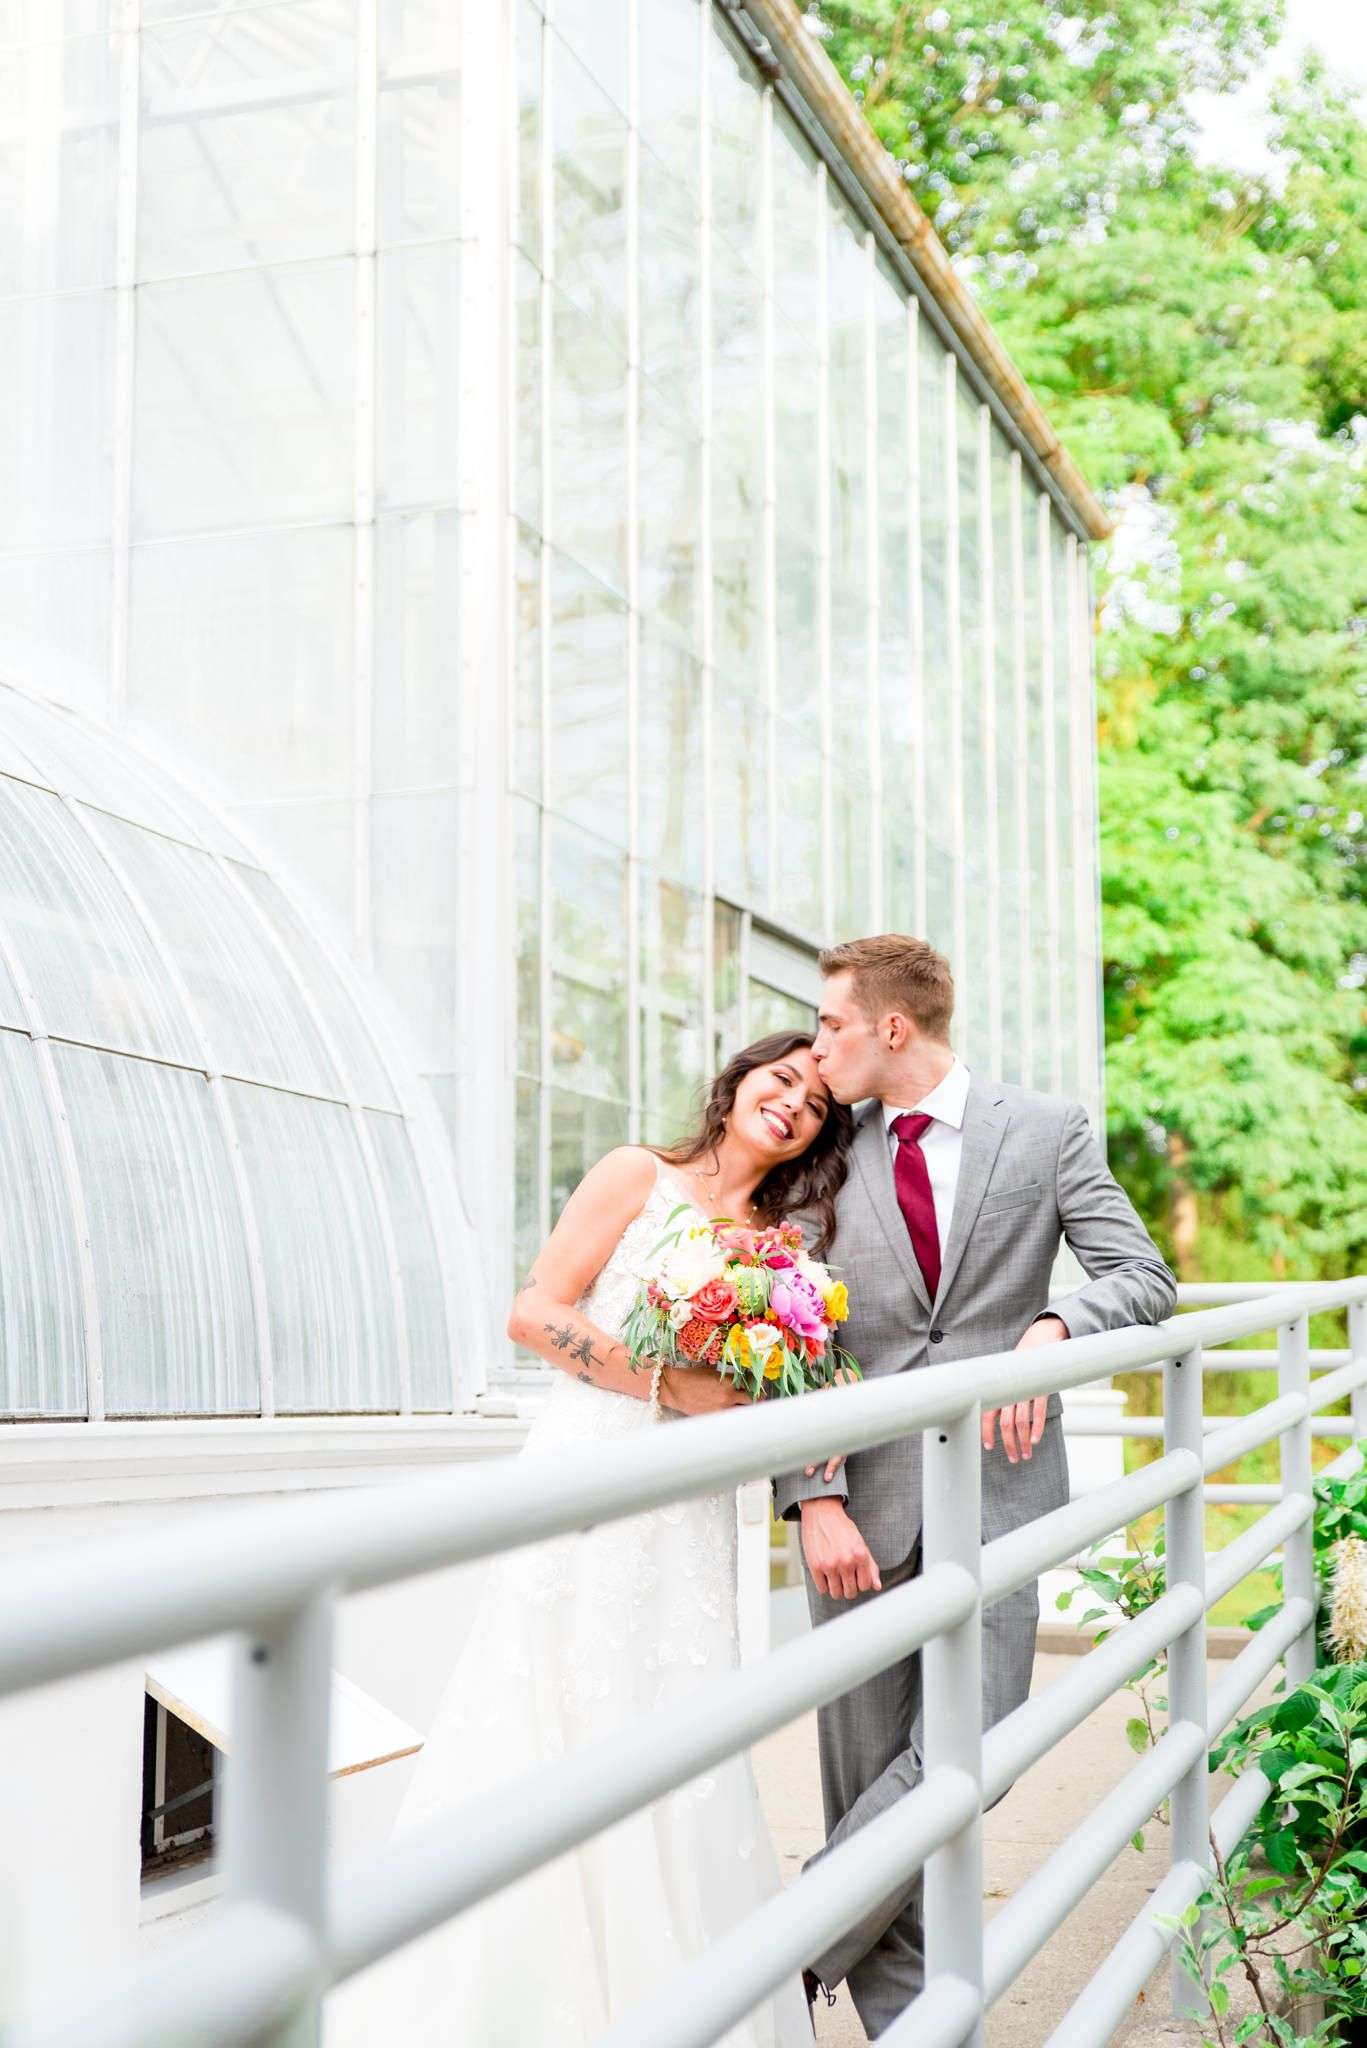 groom kissing bride on forehead at their Krohn Conservatory Wedding while bride smiles